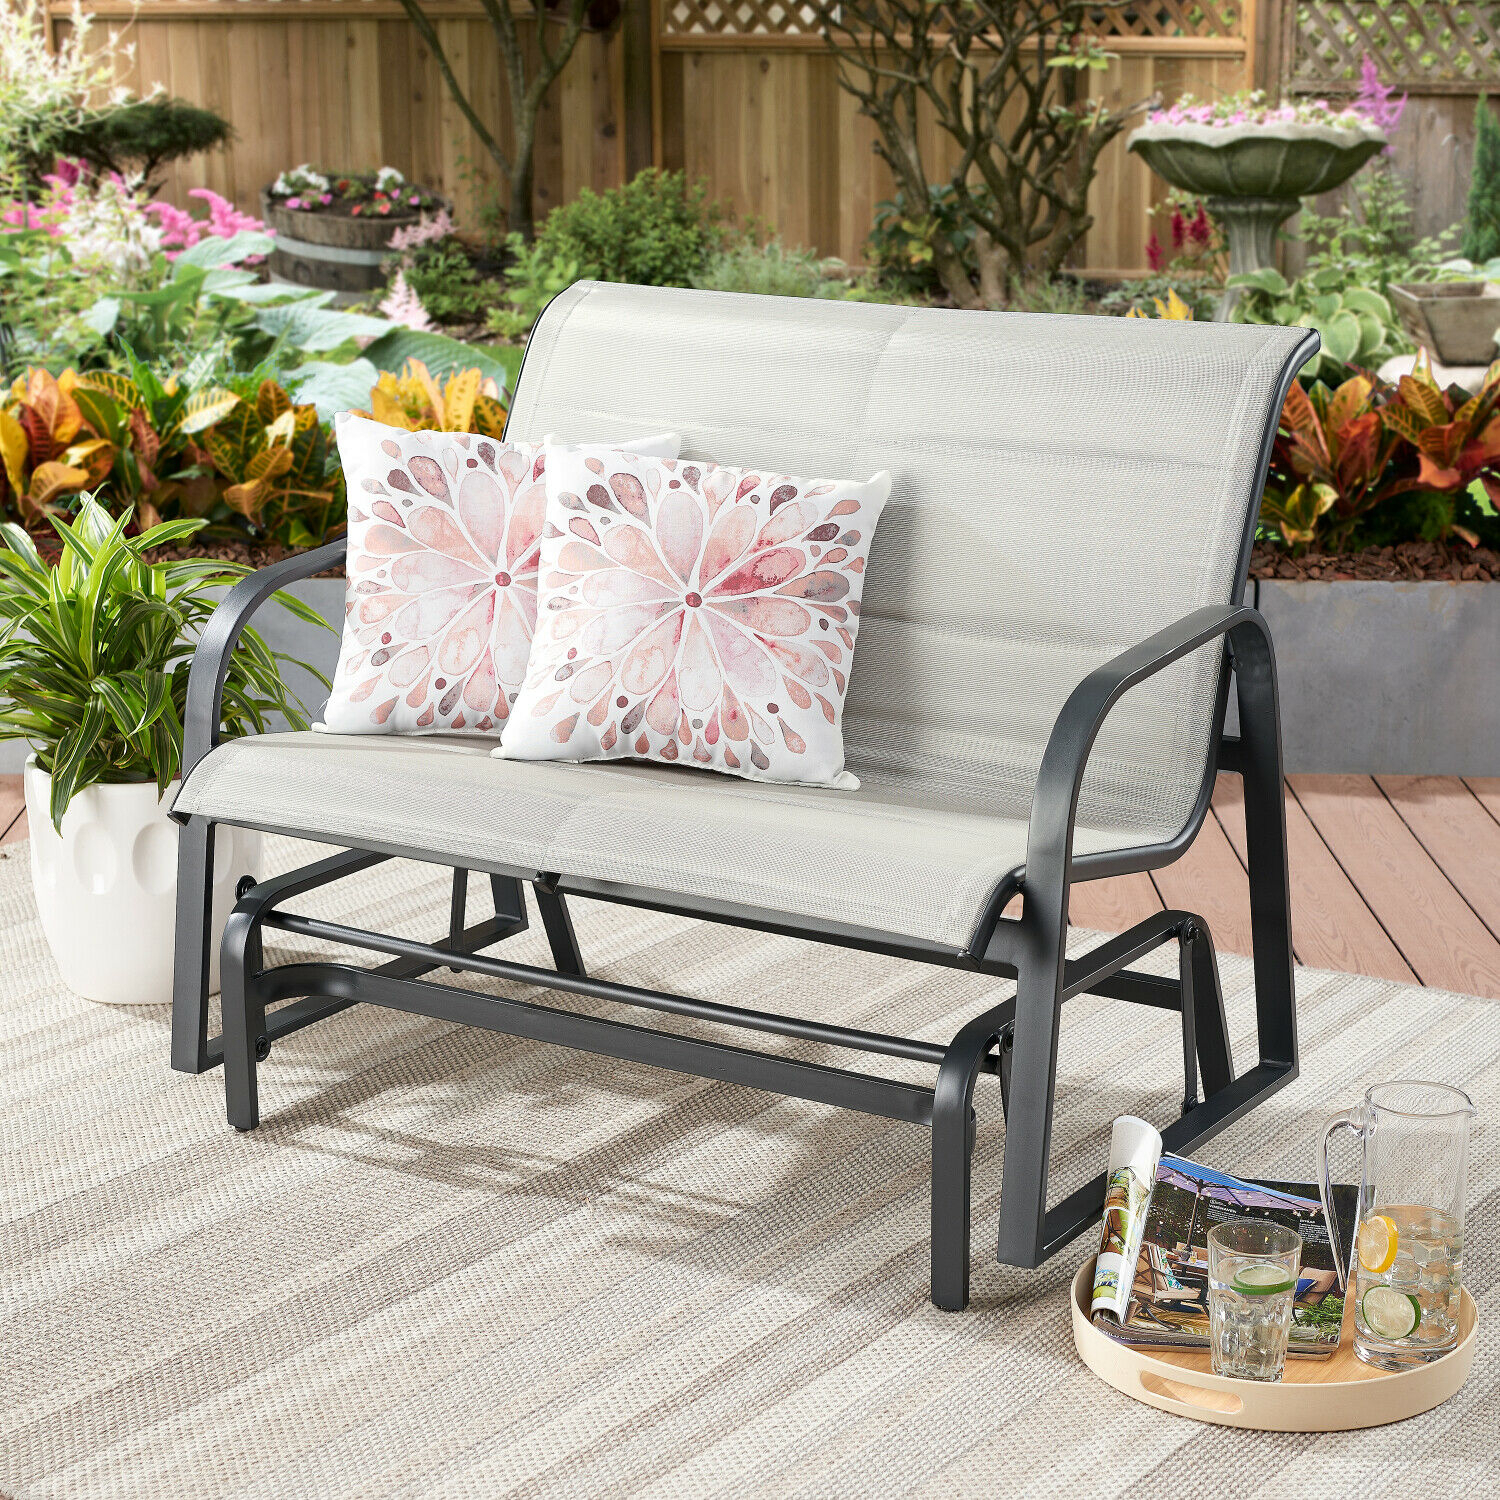 Montrose Padded Sling Glider Bench Outdoor Garden Patio Porch Furniture Chair Intended For Padded Sling Double Glider Benches (View 20 of 25)